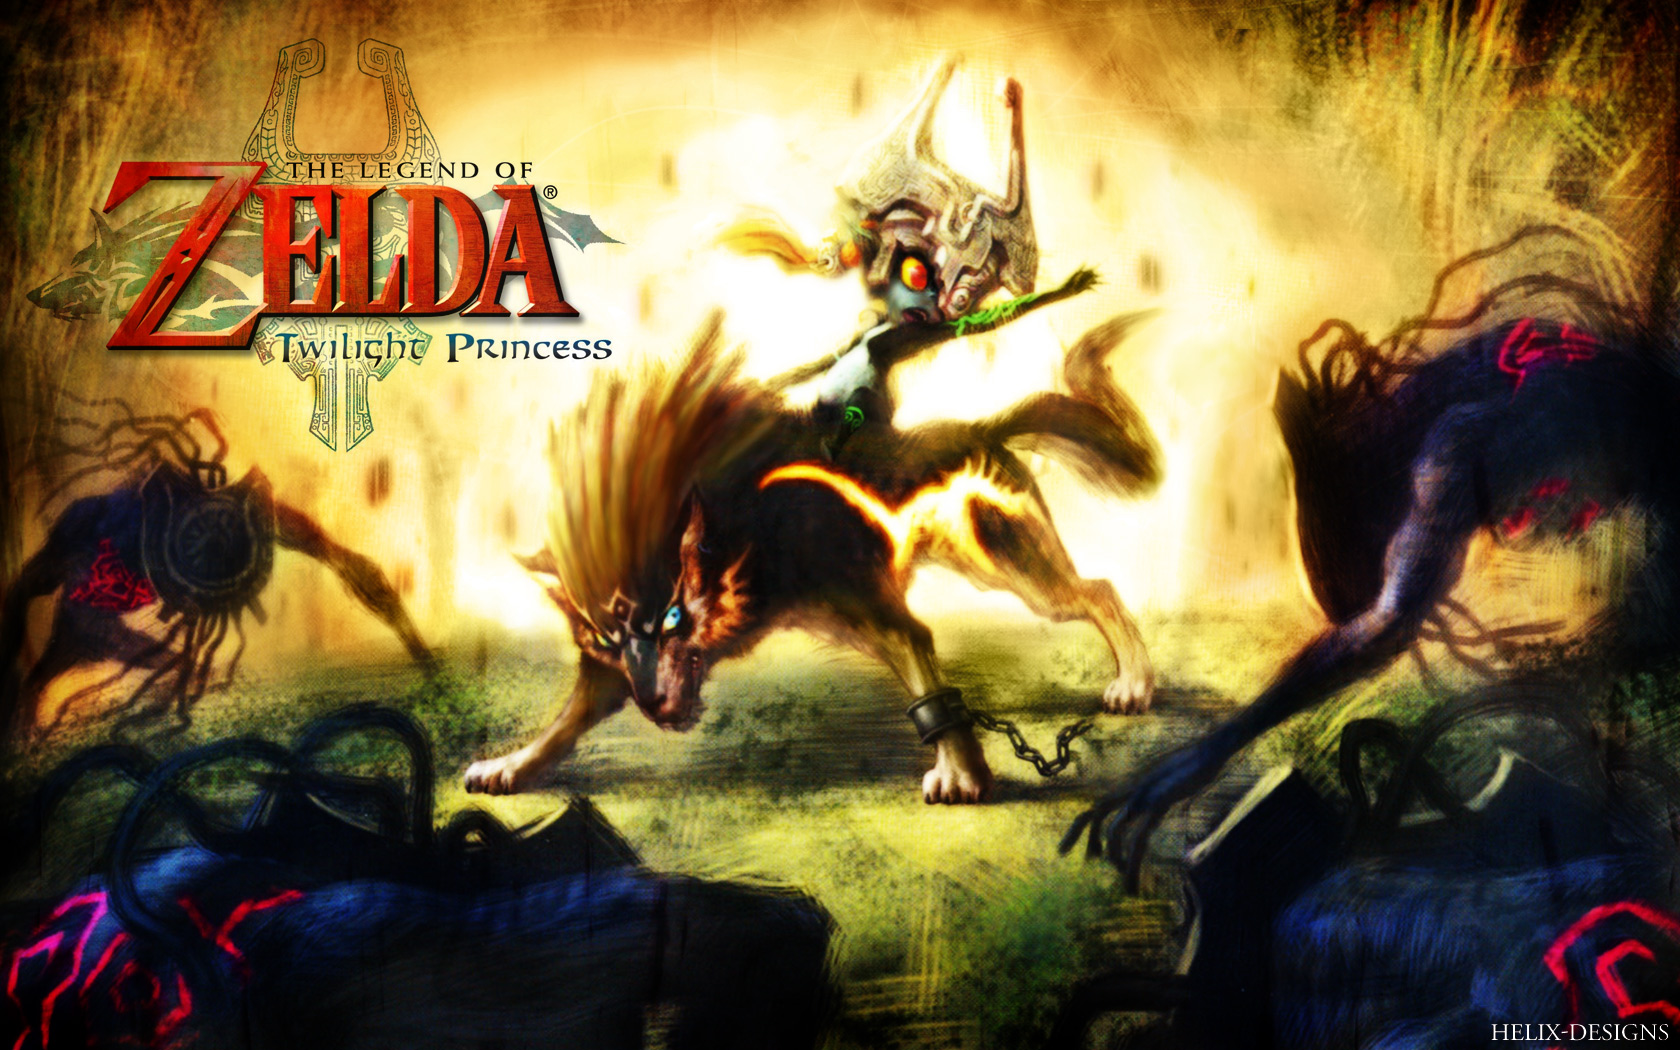 twilight princess the legend of zelda 299274 1680x1050